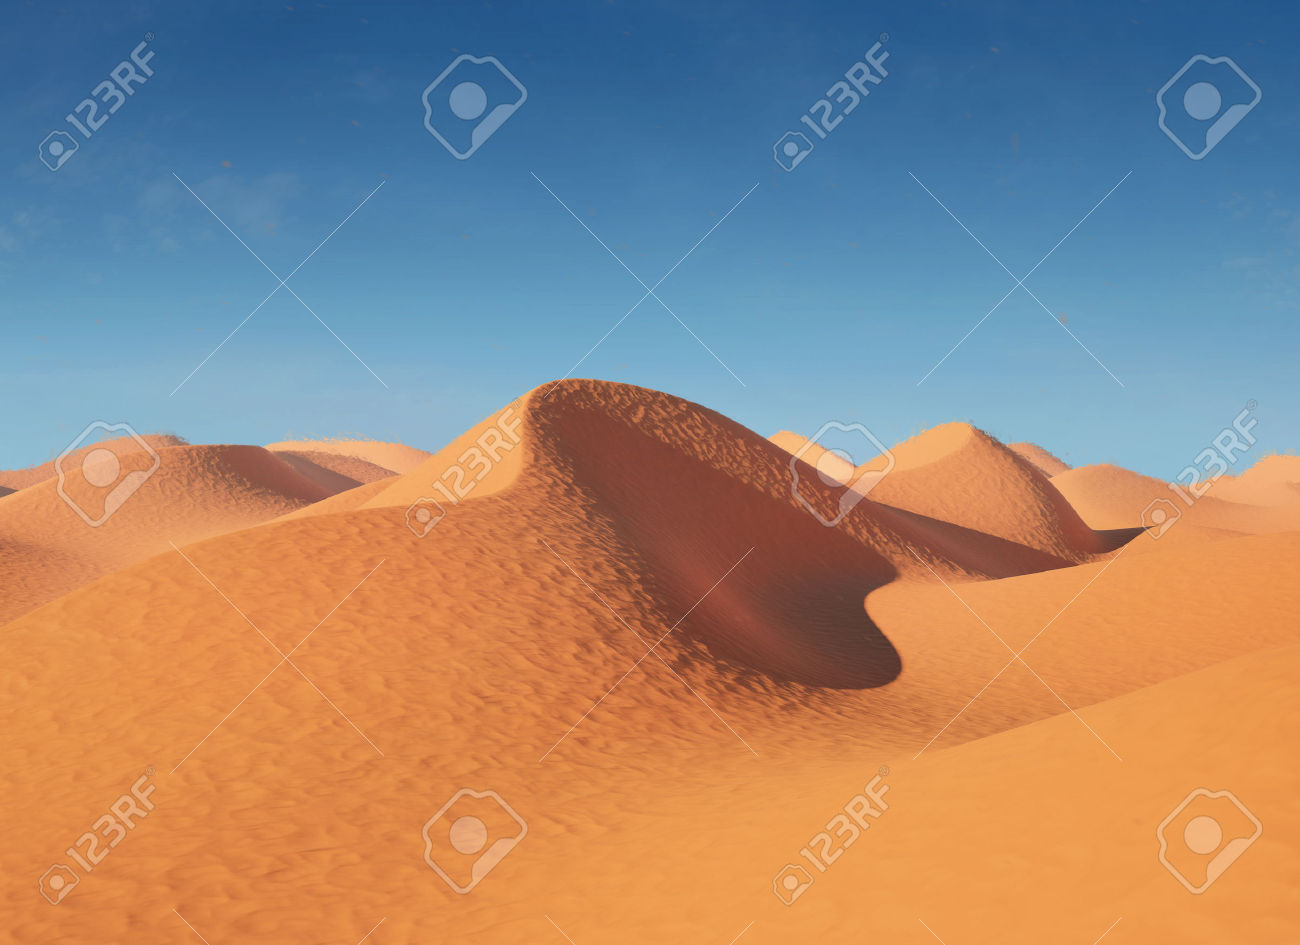 3,112 Warm Sand Stock Vector Illustration And Royalty Free Warm.